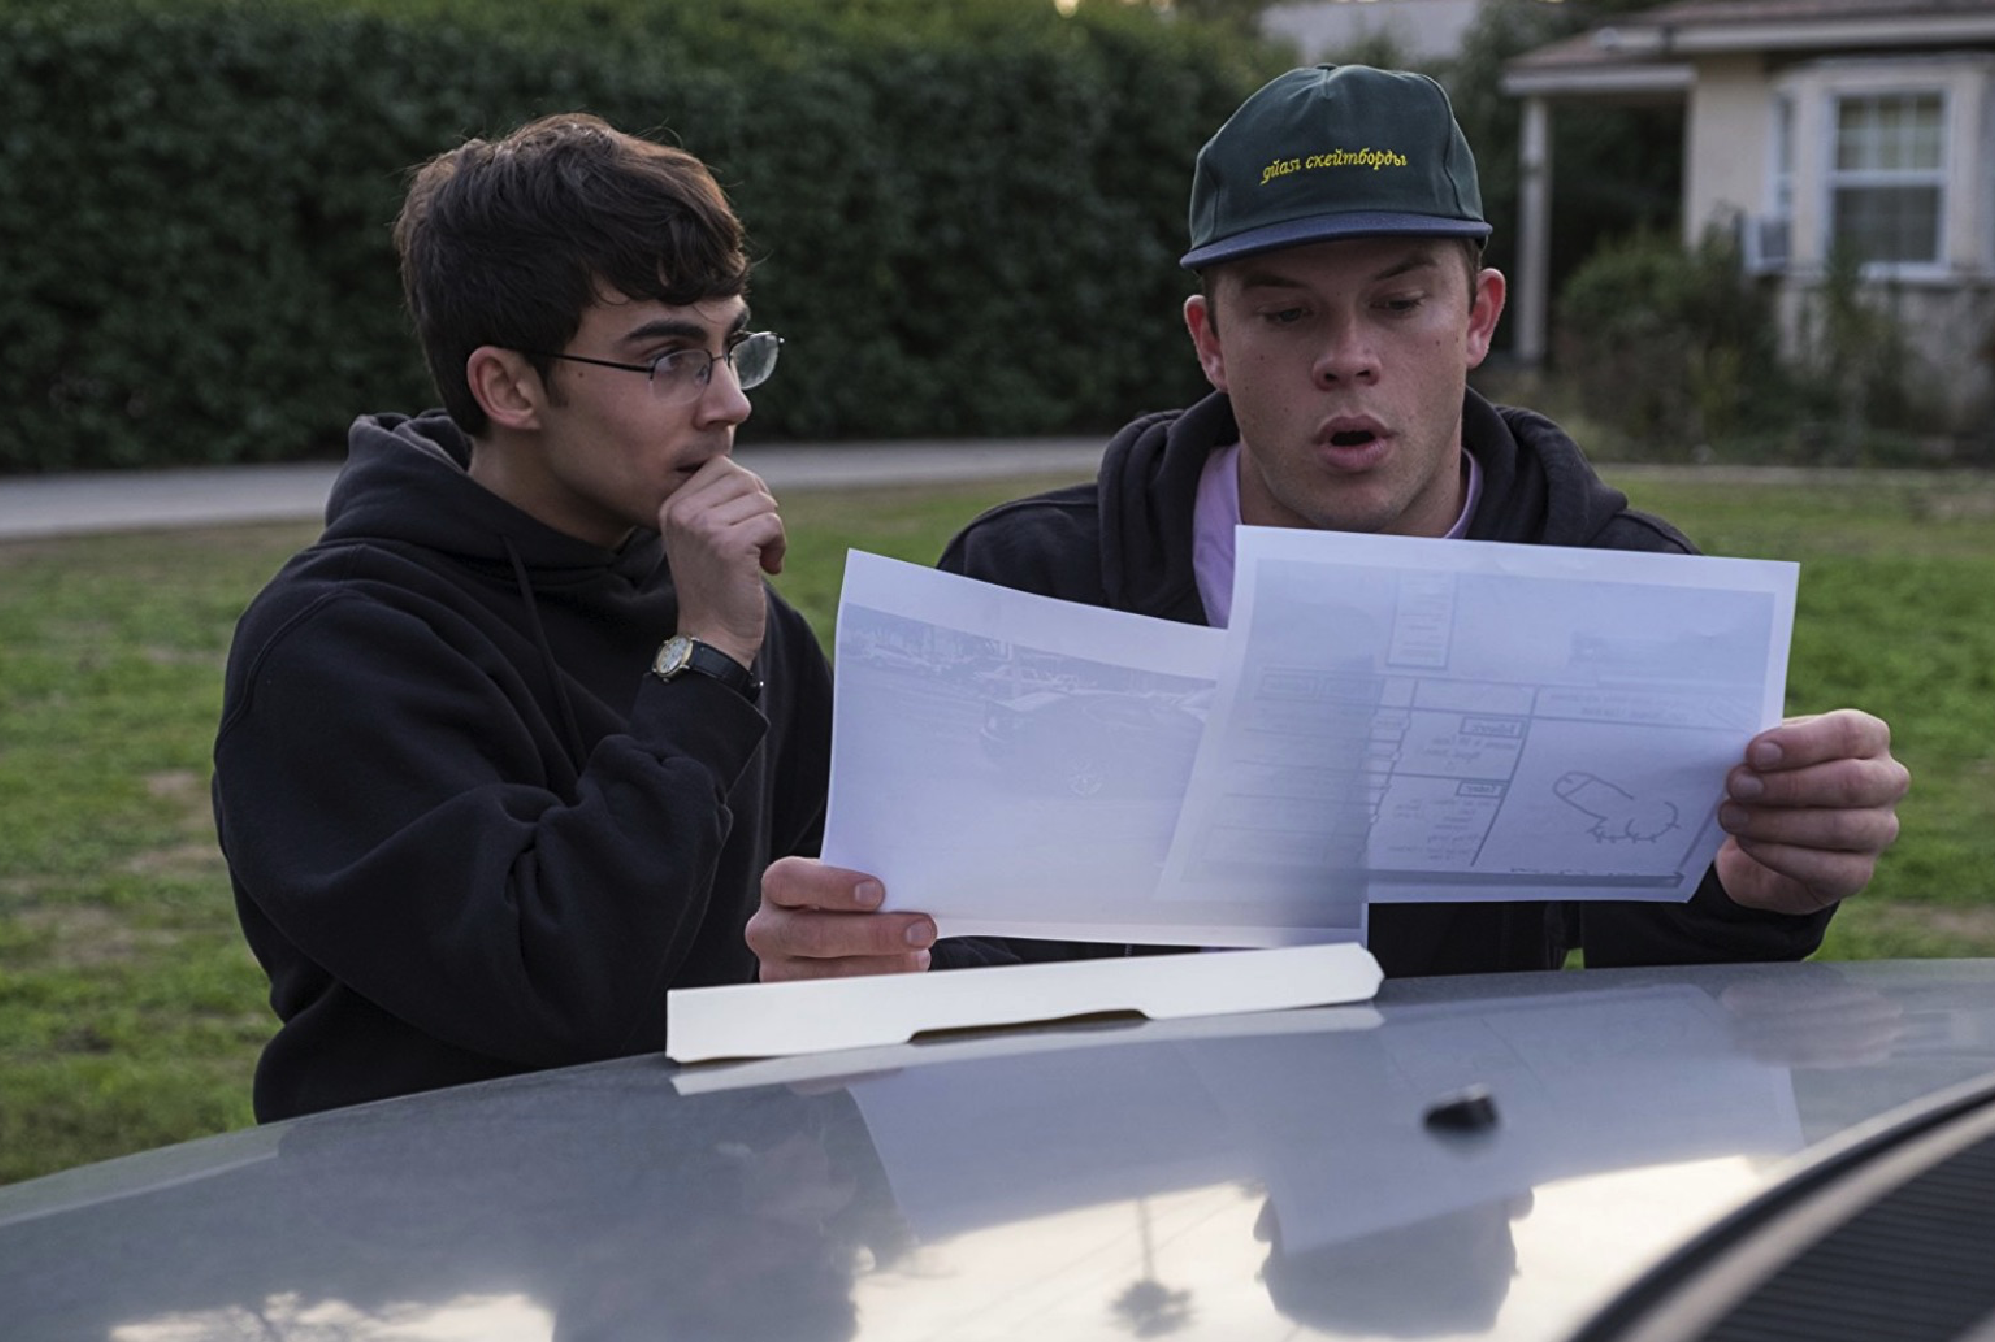 10 Things You Might Not Know About American Vandal | Mental Floss